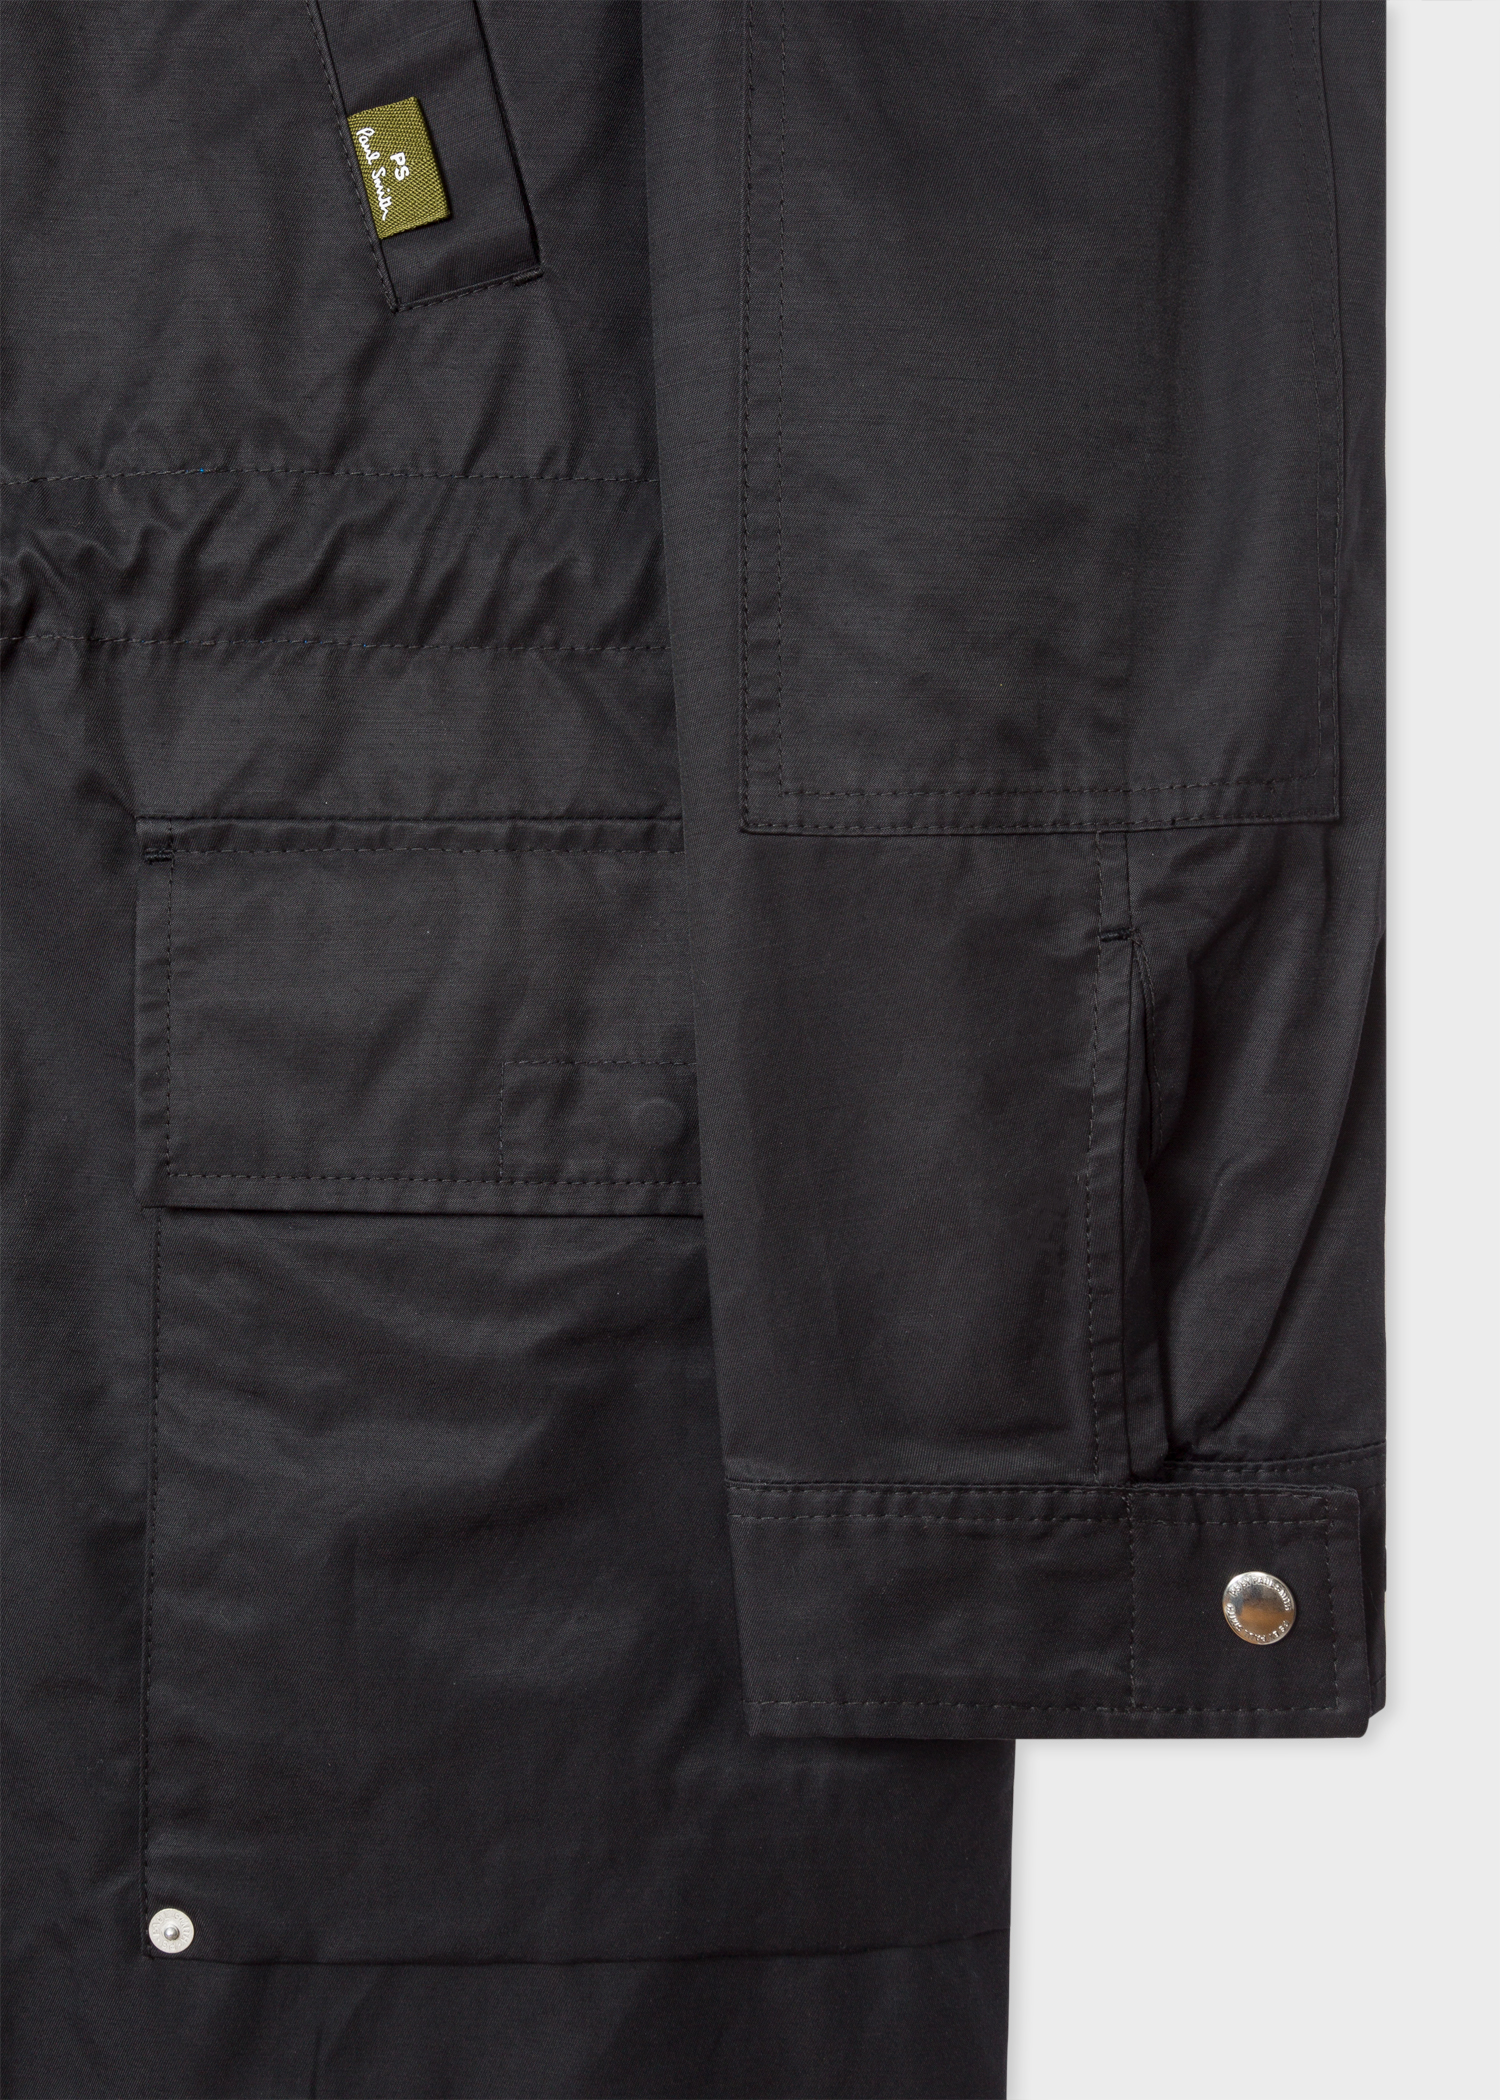 d21752dd2 Men's Black 2-In-1 Cotton-Blend Parka